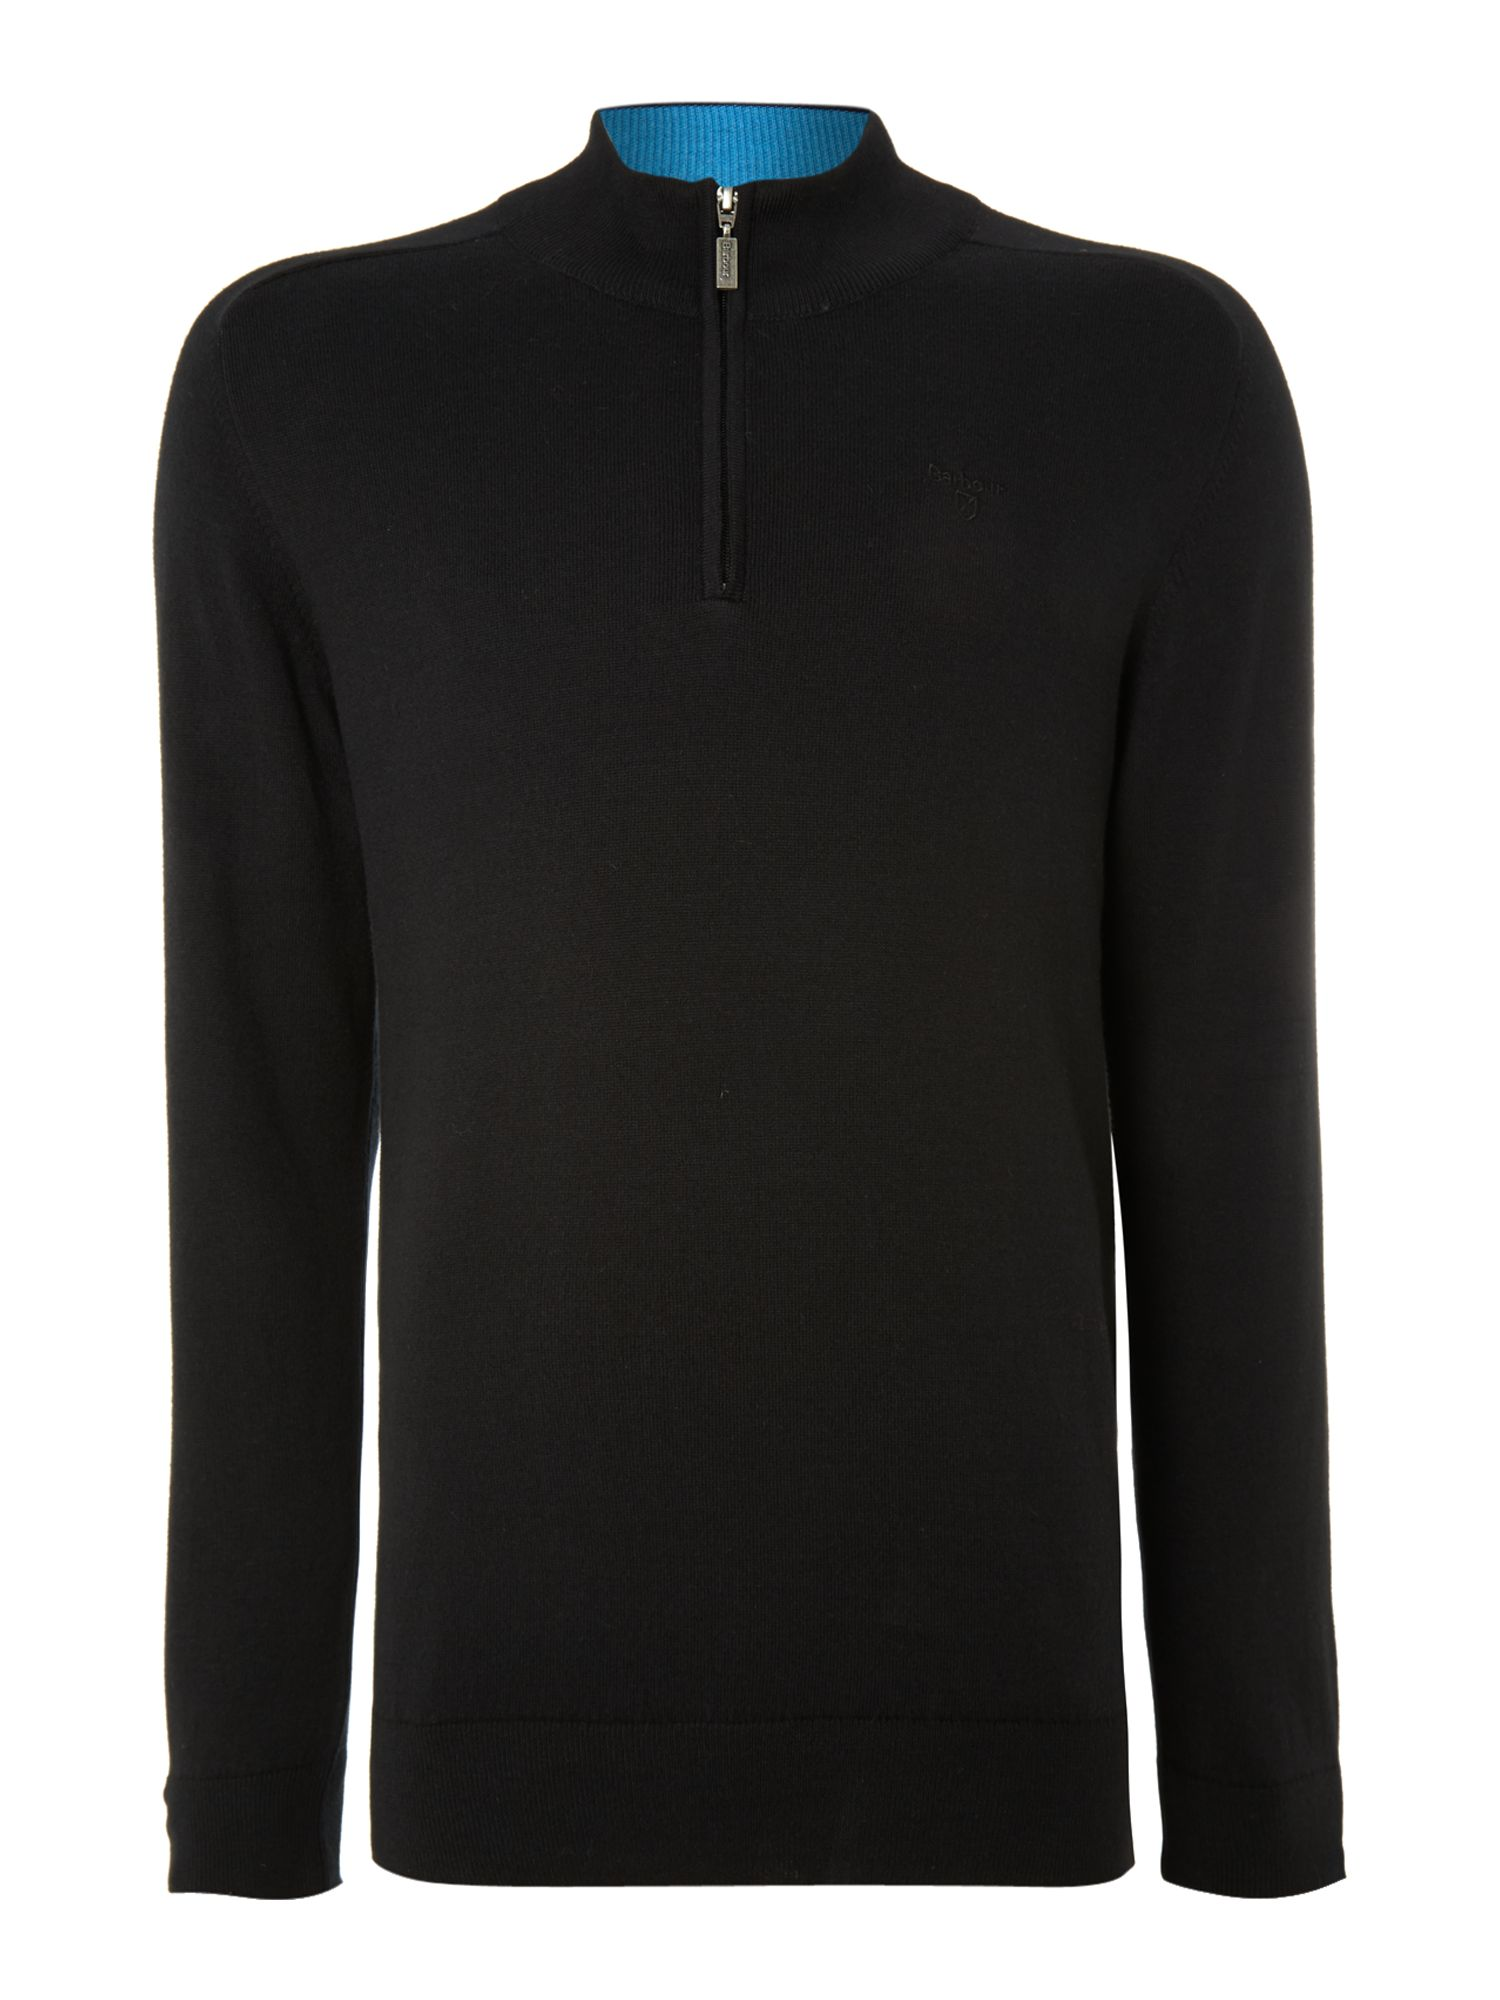 Cotton cashmere half zip jumper